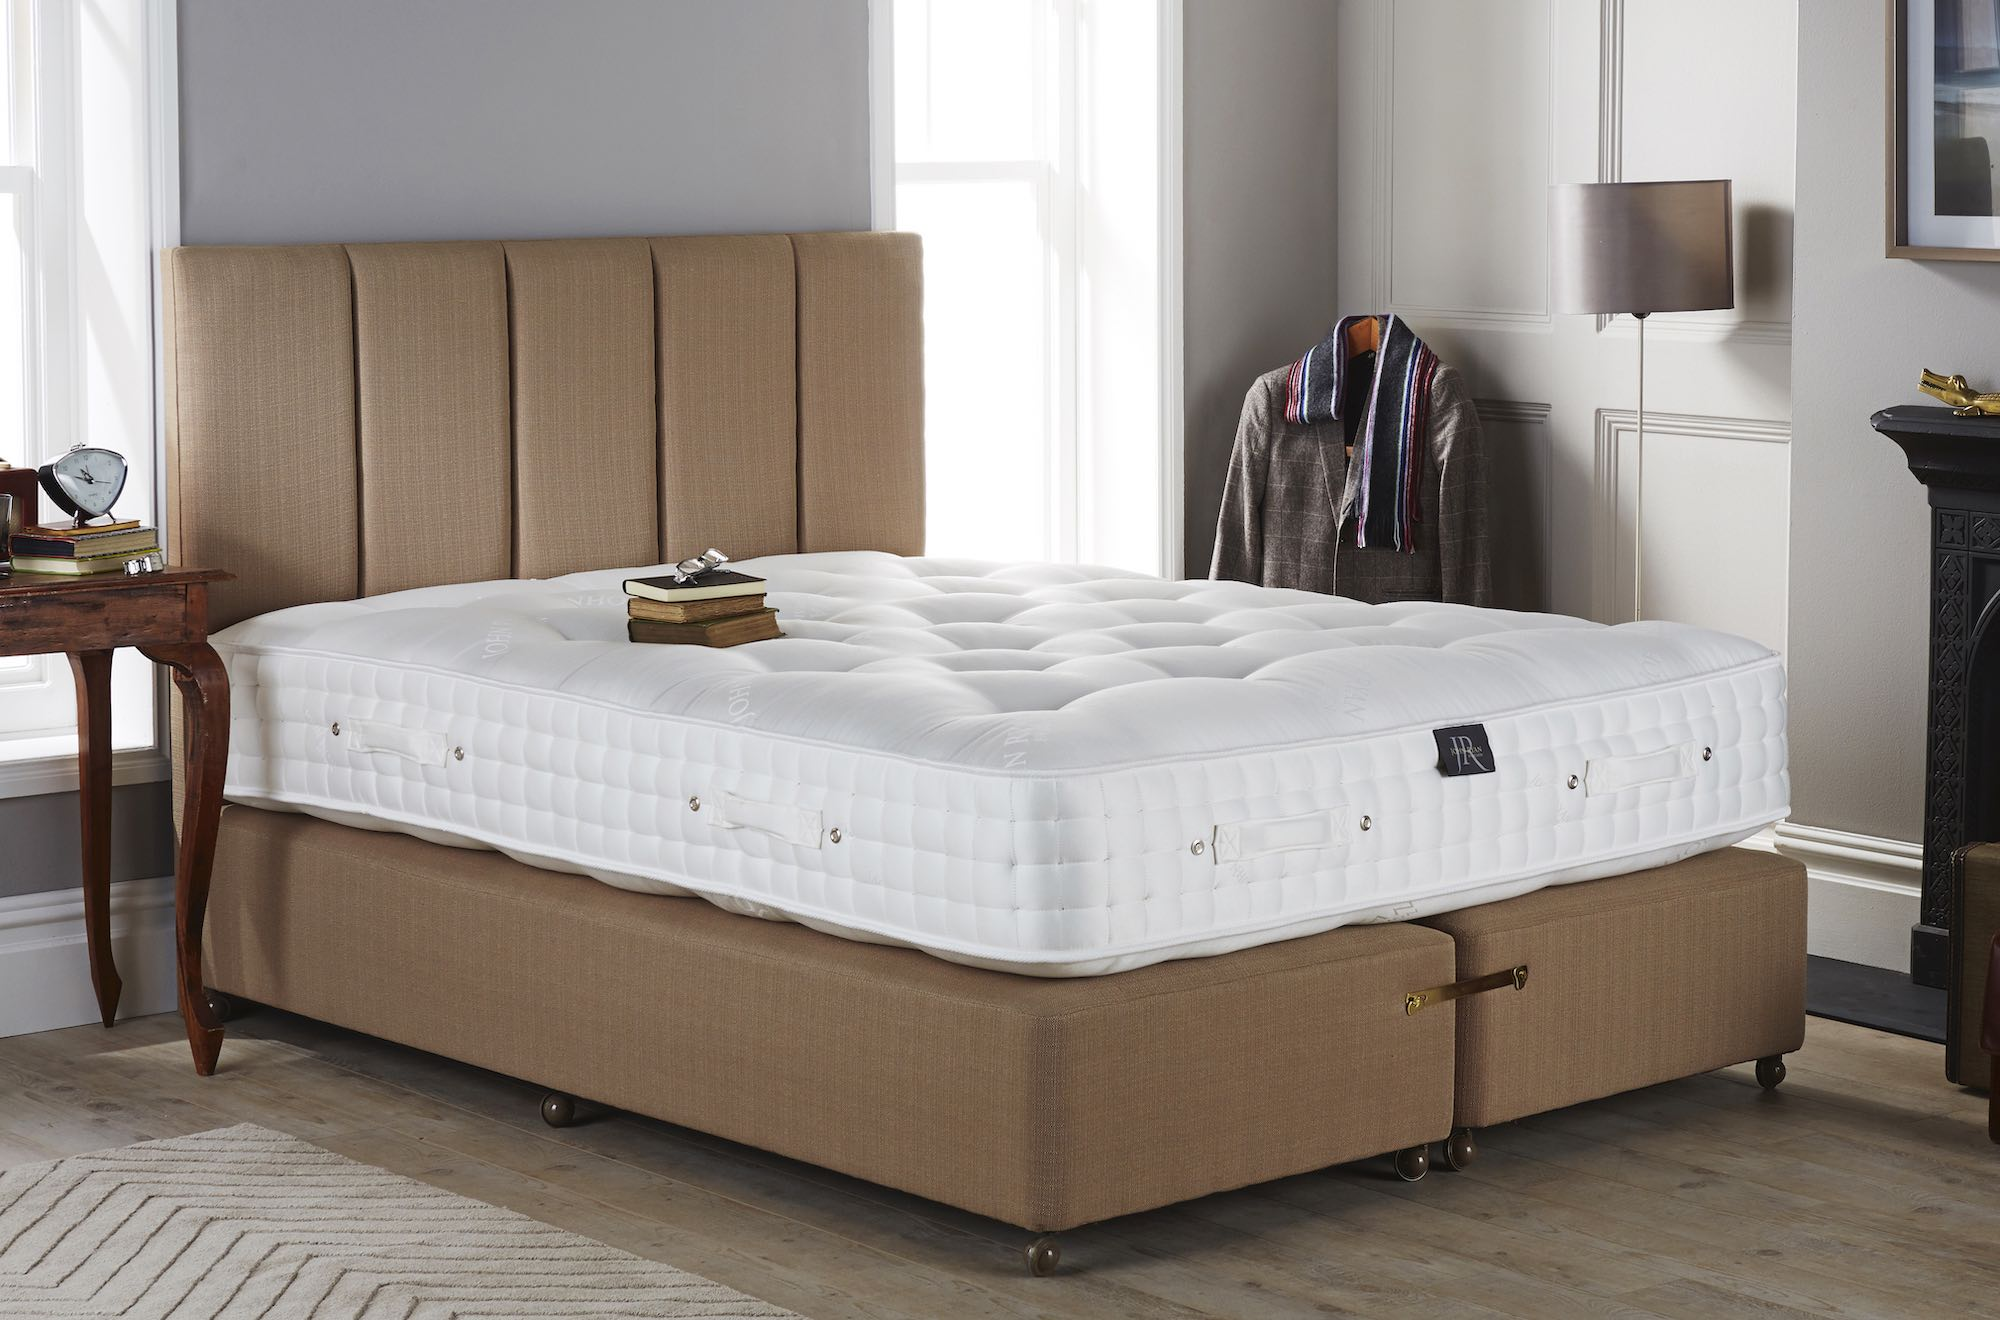 A kingsize mattress in a bedroom